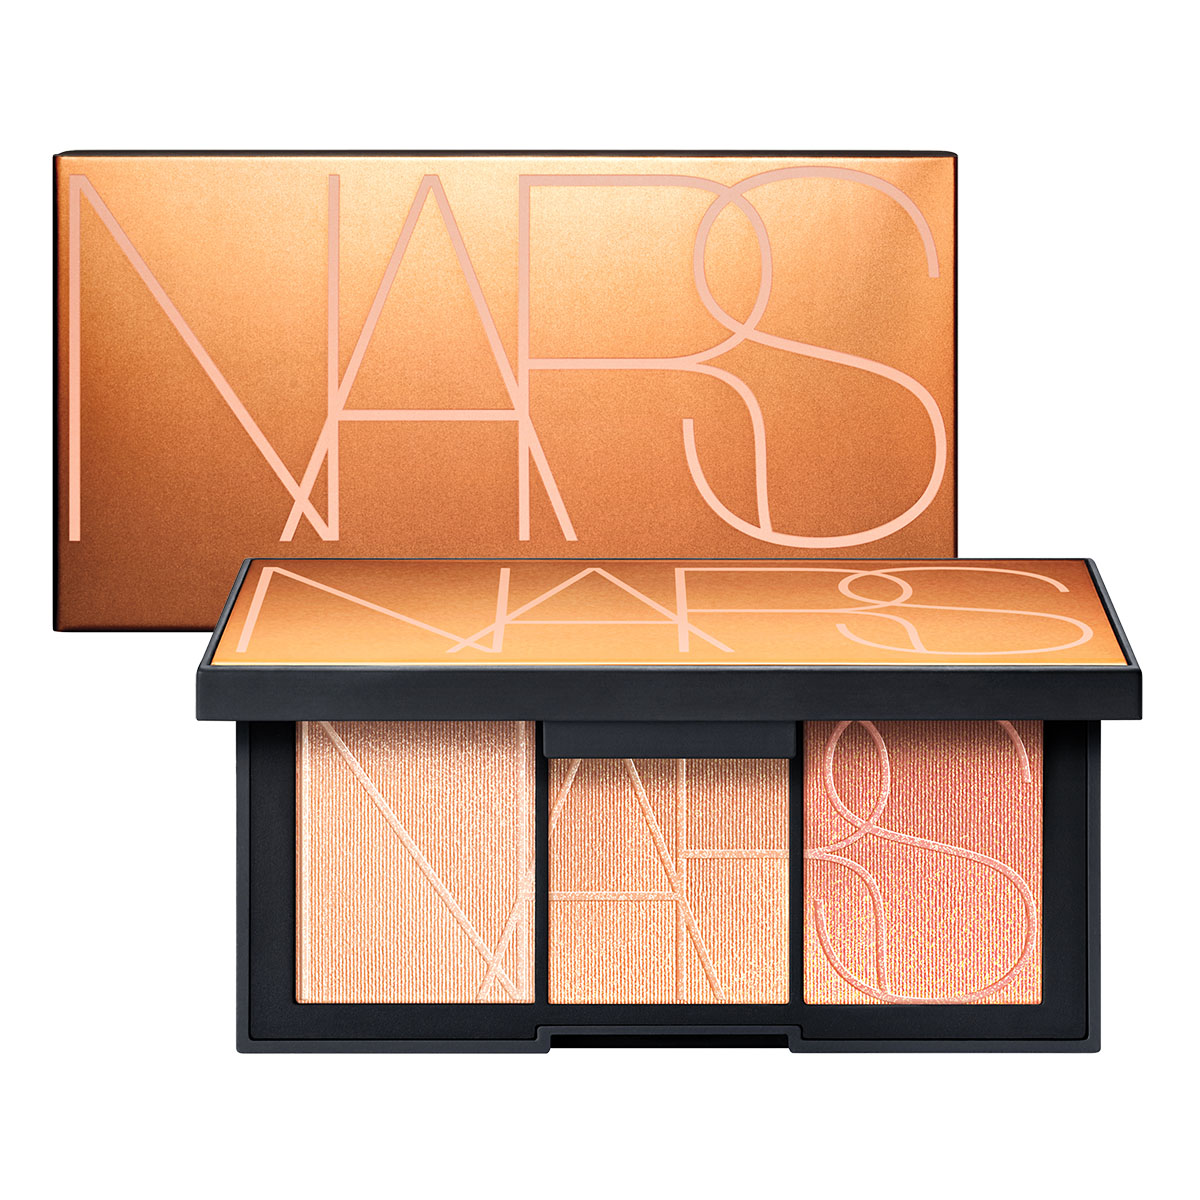 Banc de sable highlighter palette nars cosmetics - Construction banc en palette ...